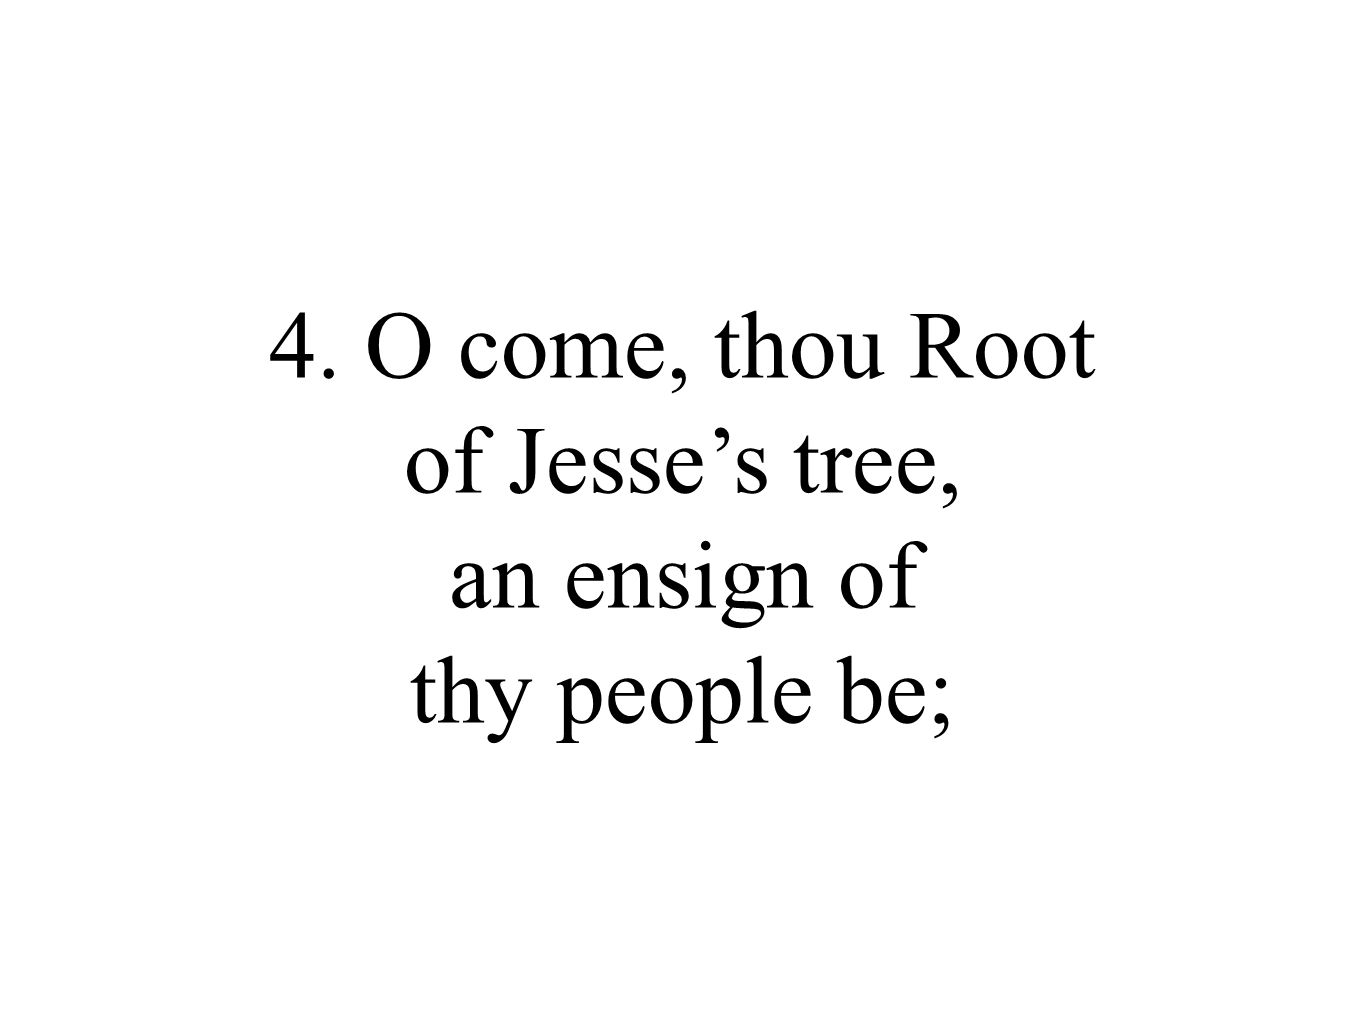 4. O come, thou Root of Jesse's tree, an ensign of thy people be;